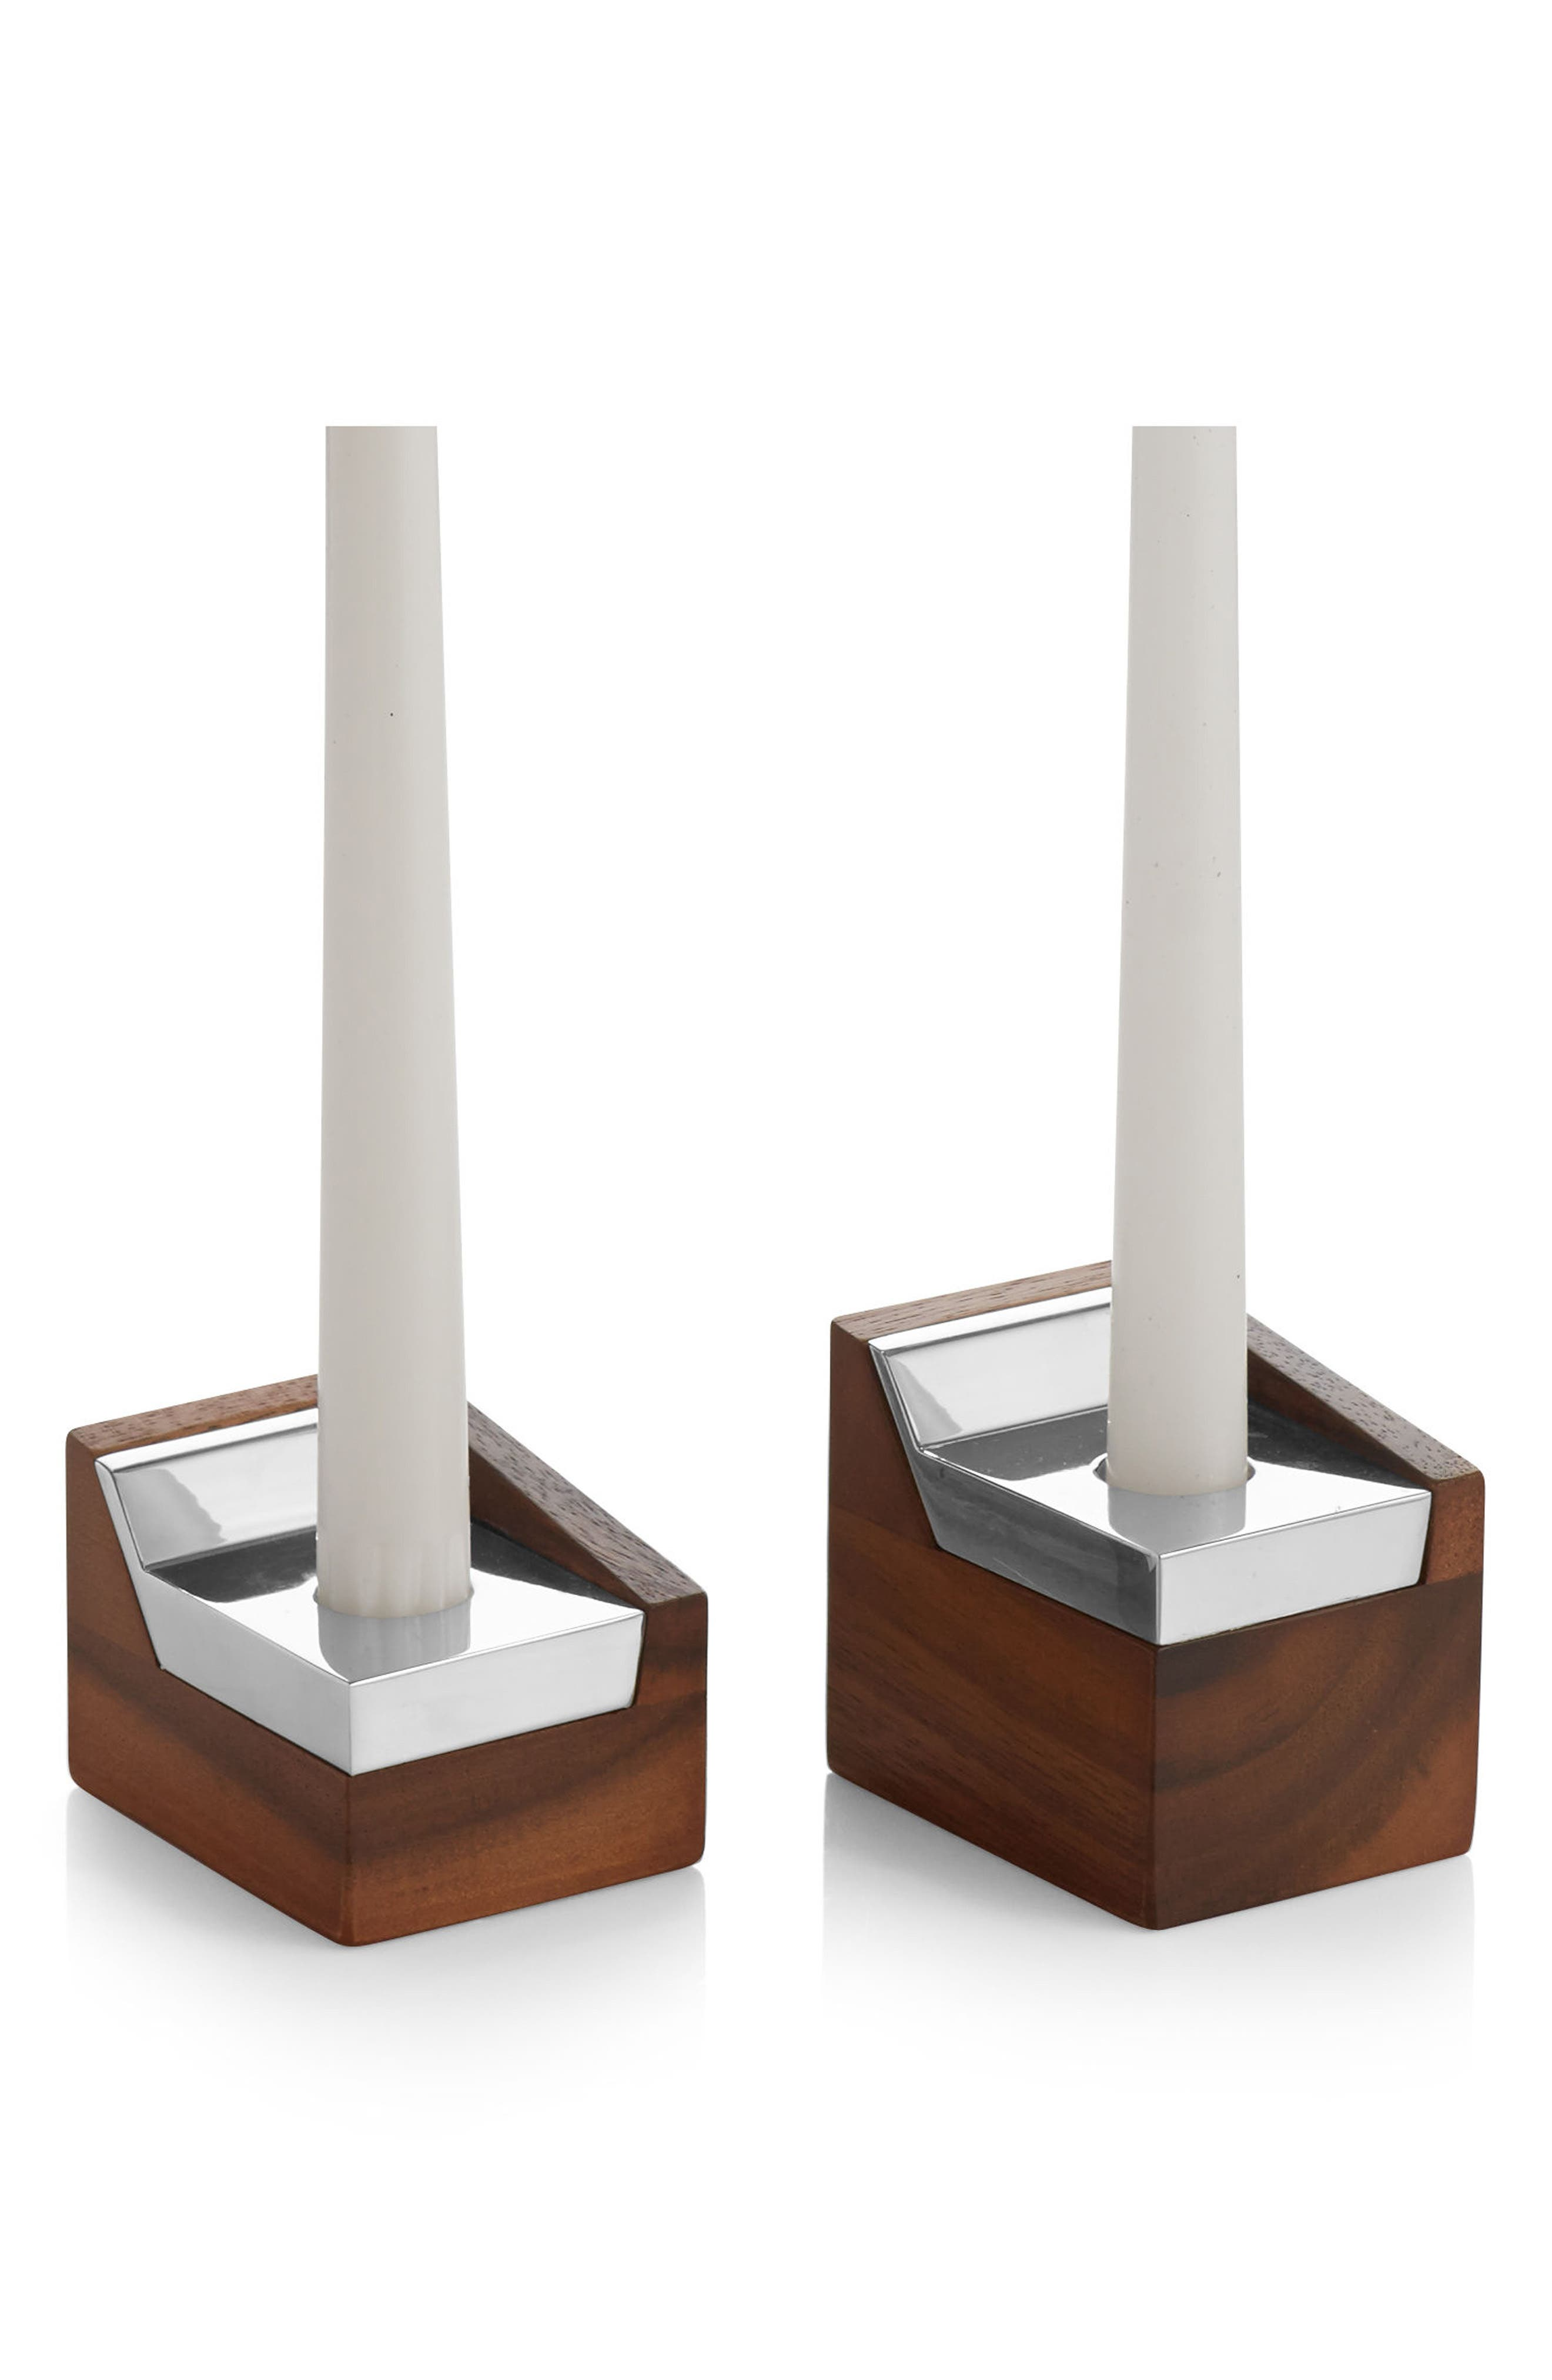 Geo Sabbath Set of 2 Candlesticks,                             Alternate thumbnail 2, color,                             200